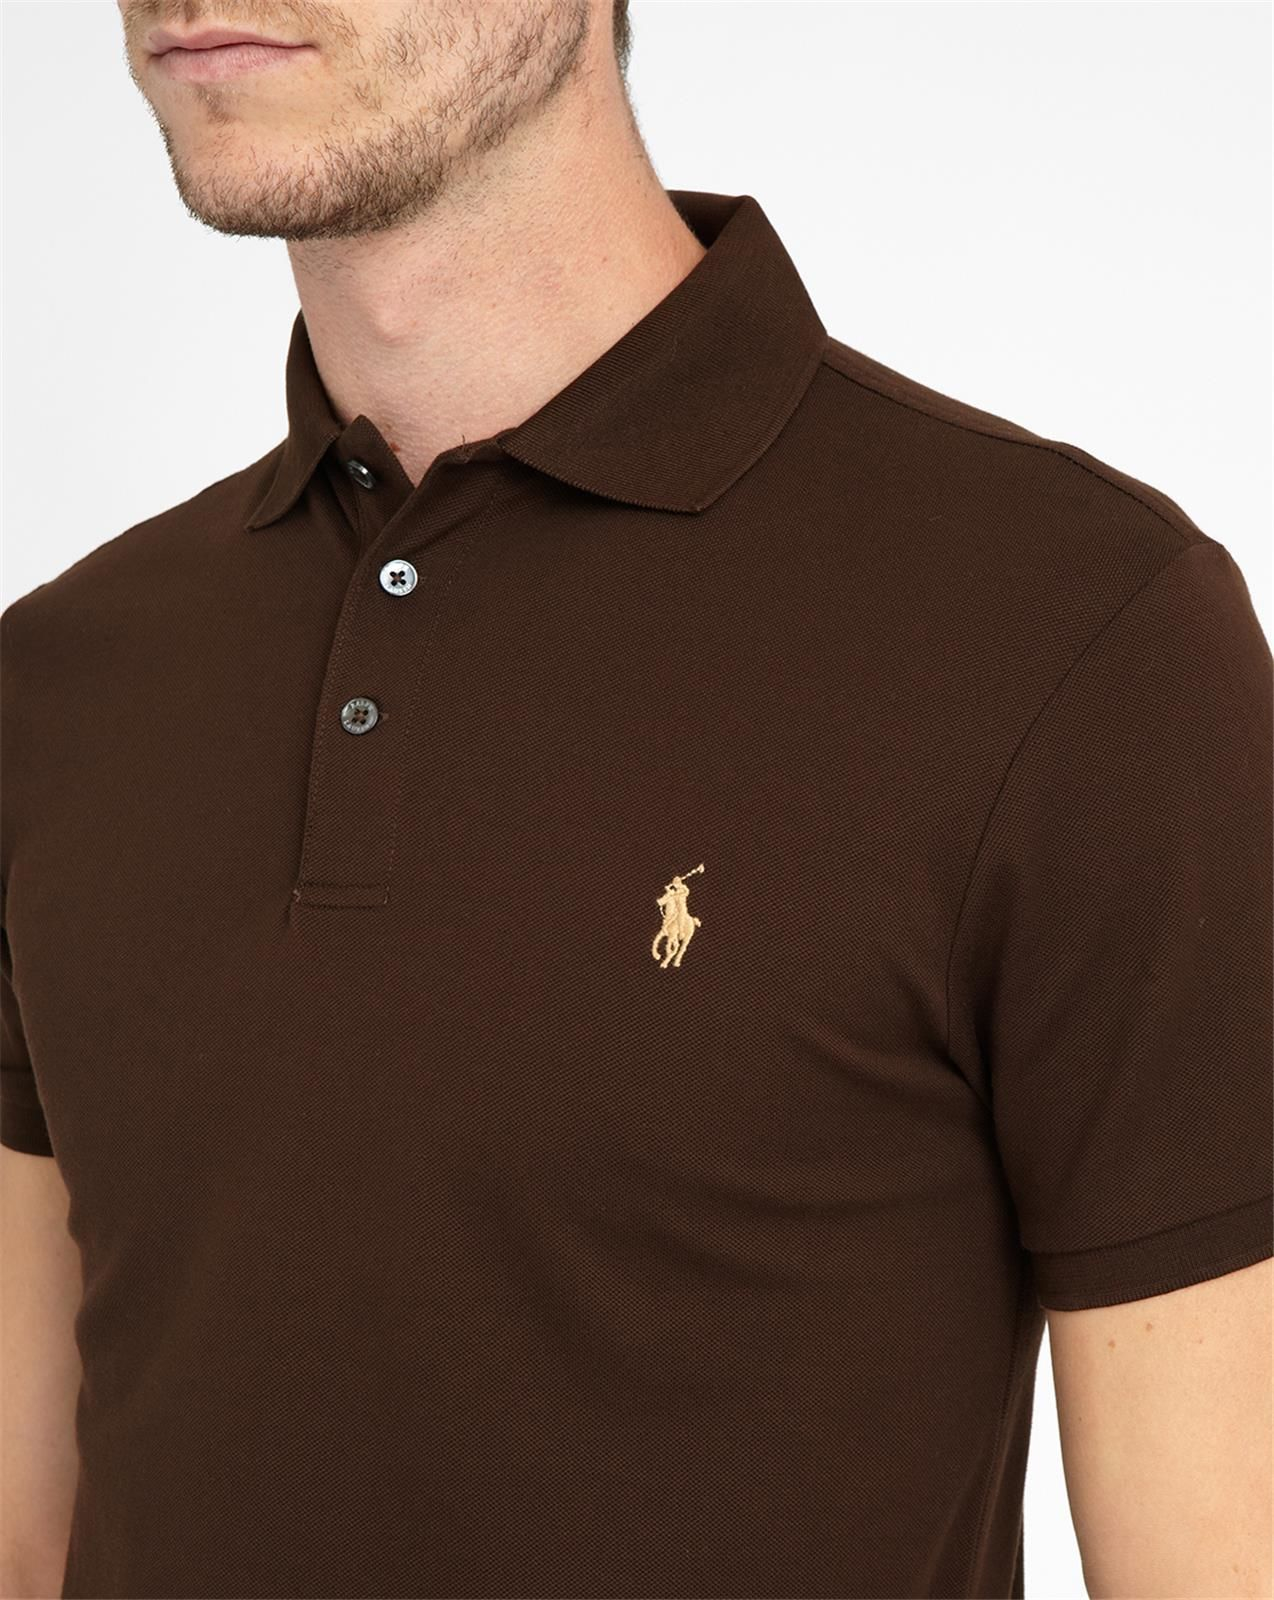 Polo ralph lauren chocolate stretch polo shirt in brown for Black brown mens shirts